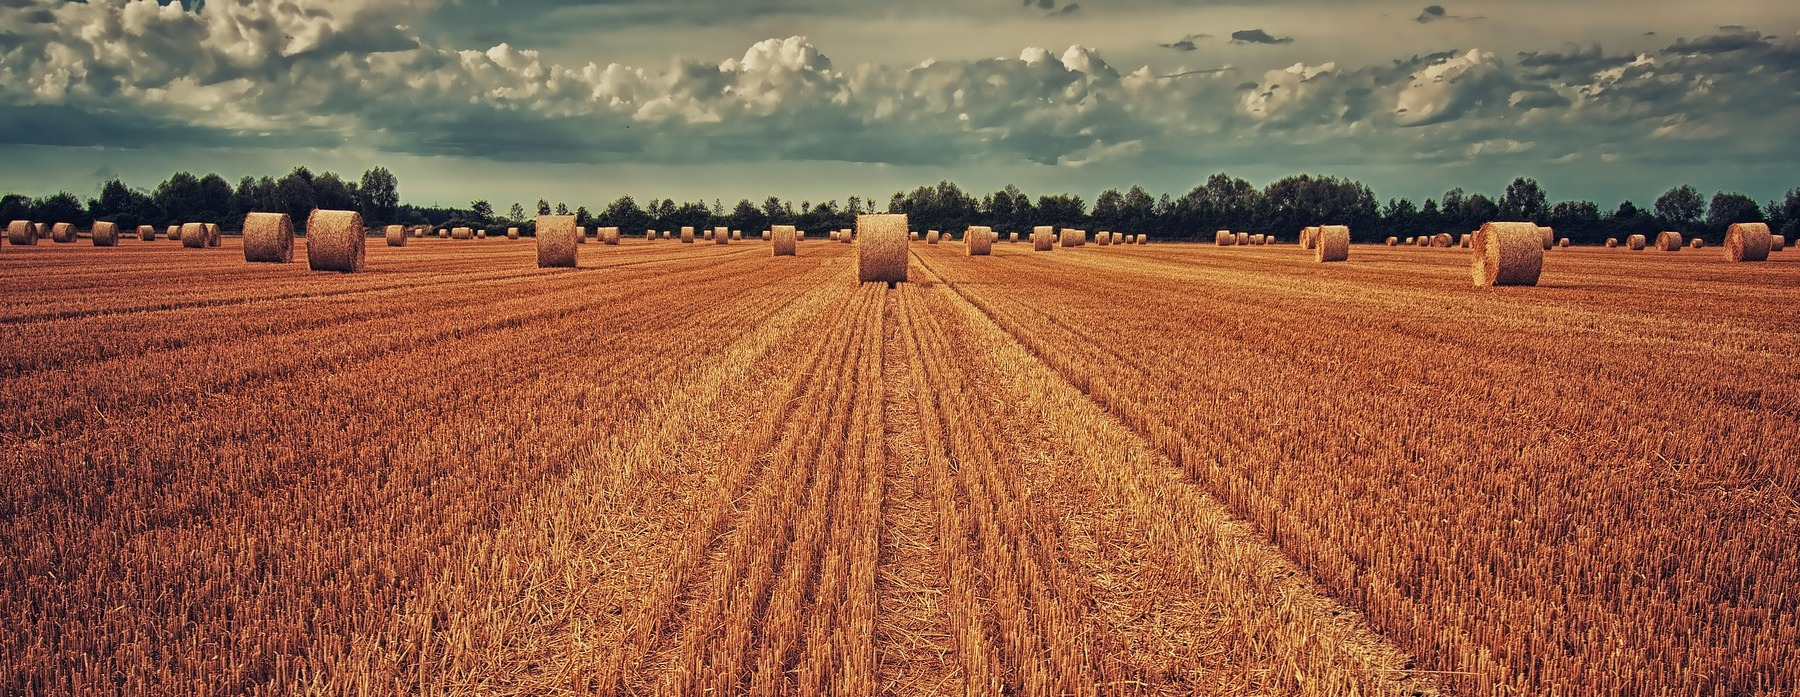 Smolensk company exports agricultural machinery to Poland